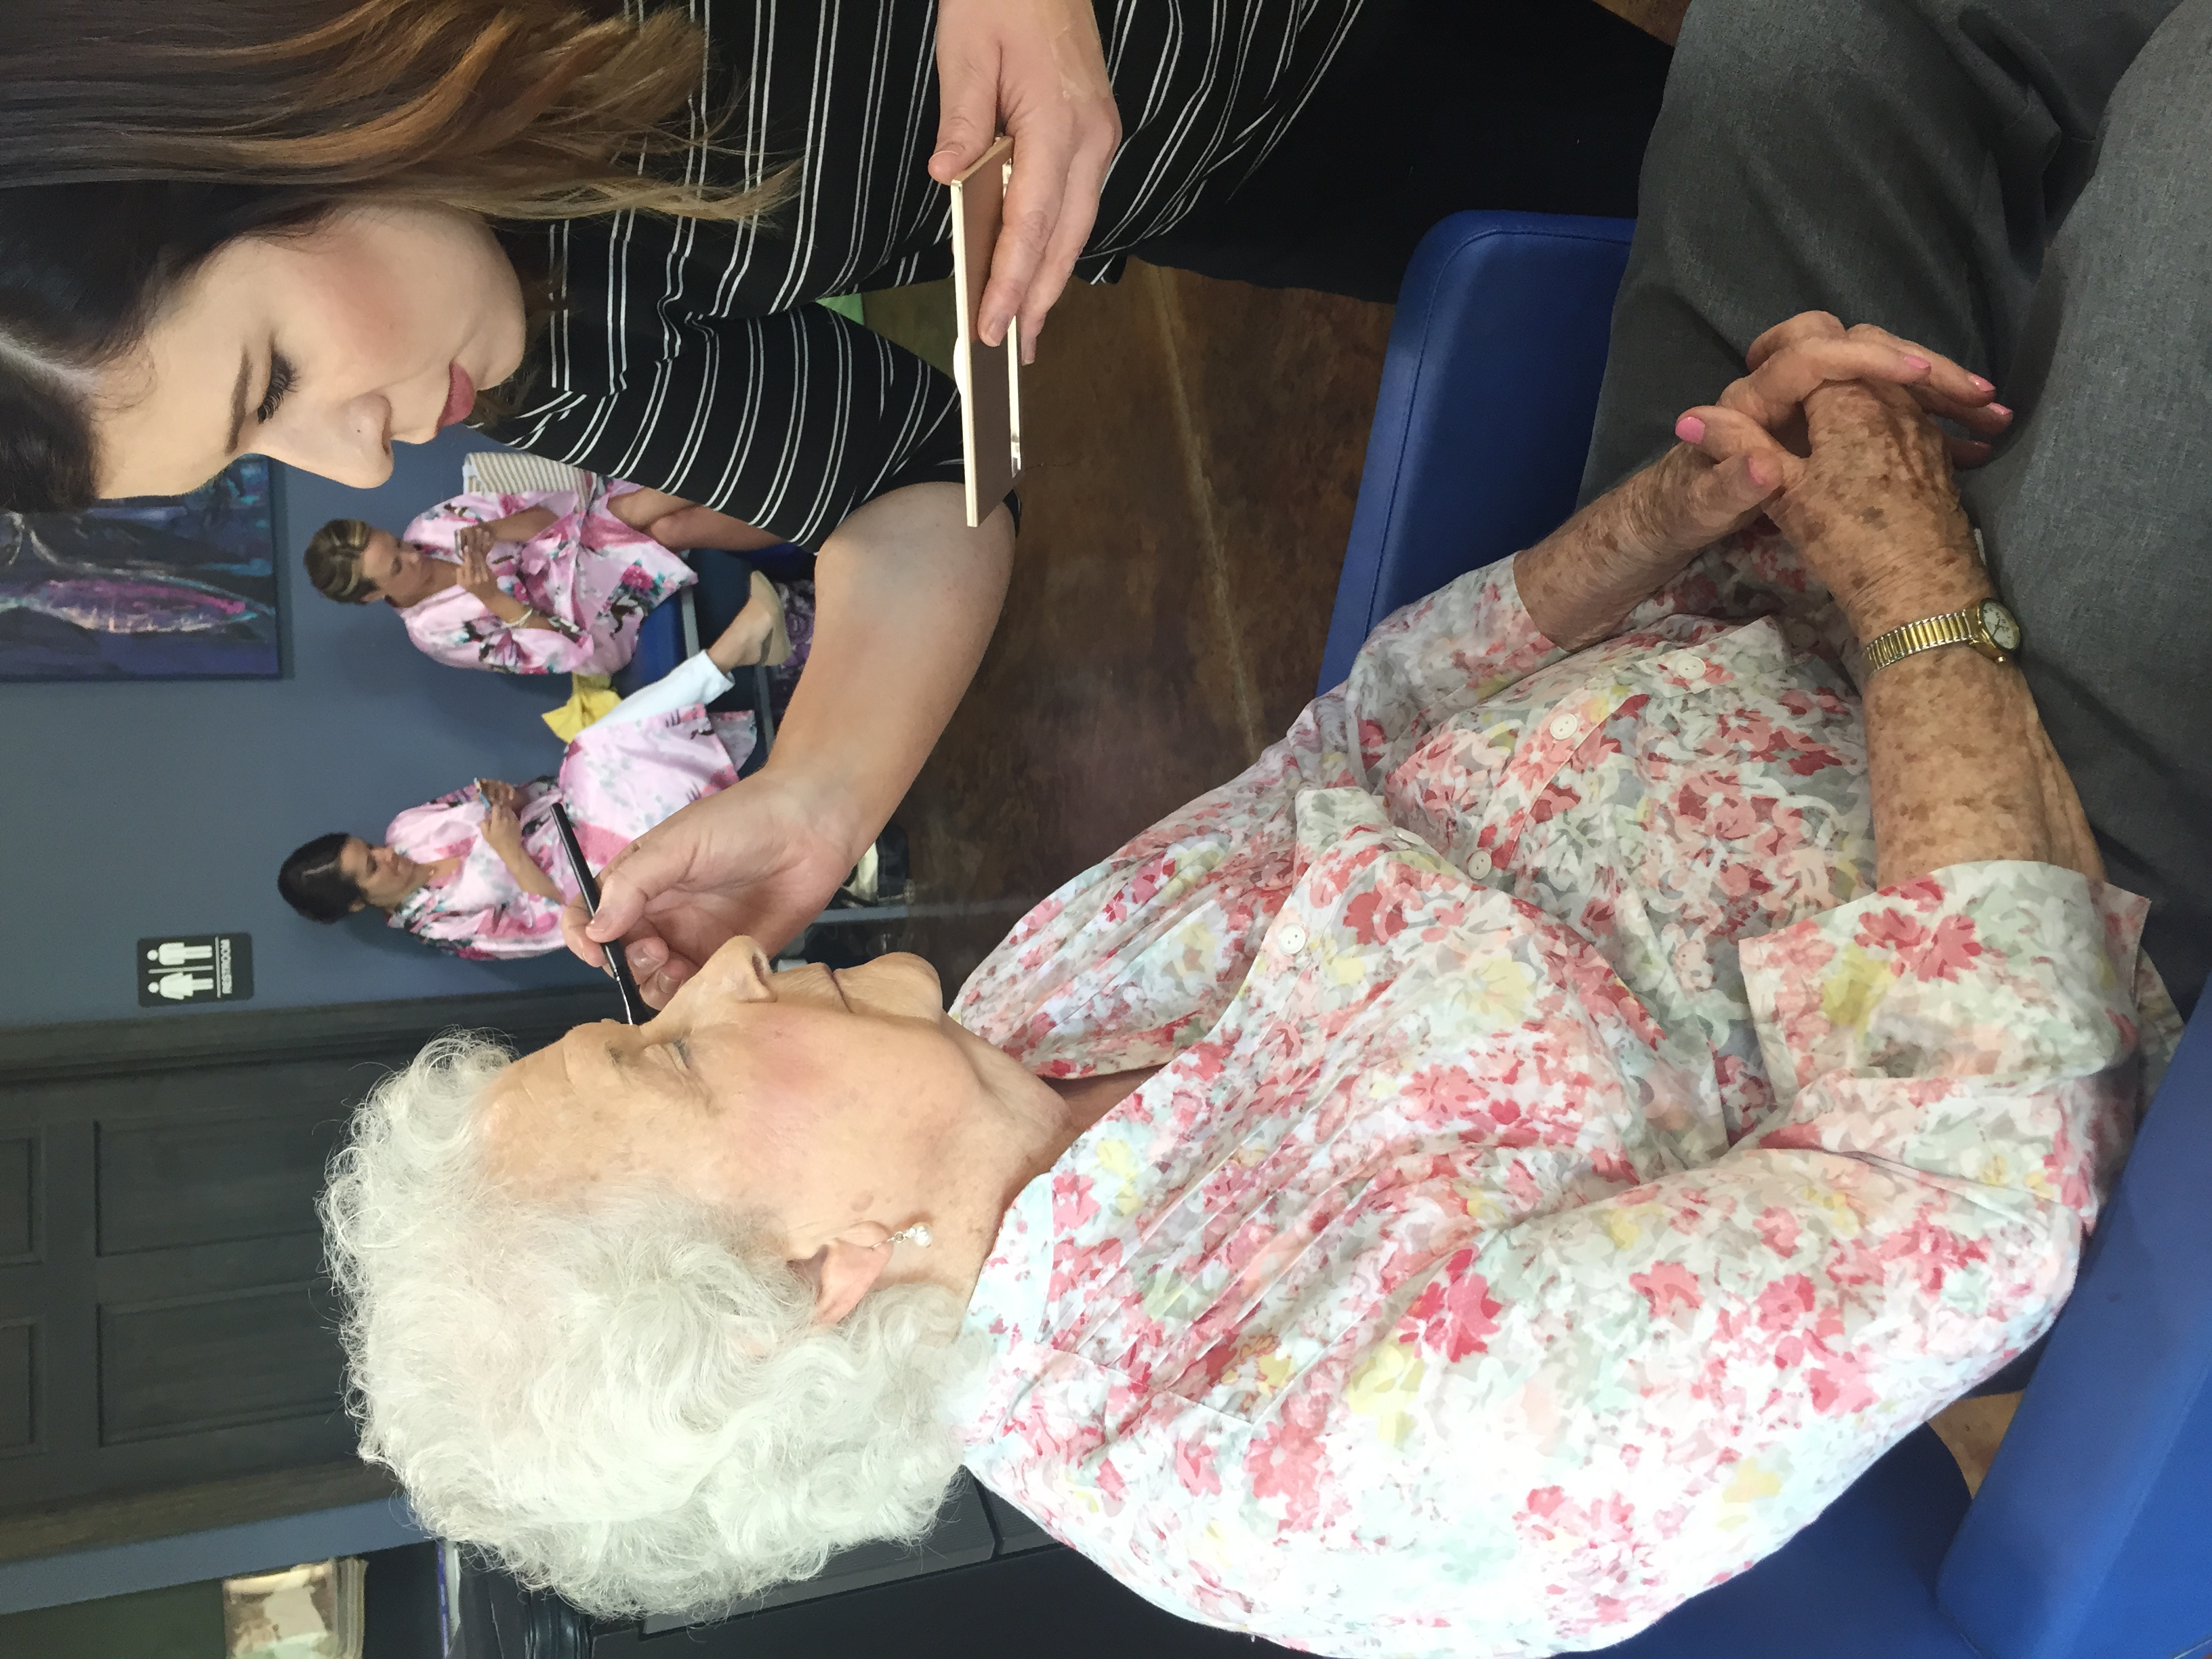 Sarah treated her bridal party and the ladies in our family to either hair, makeup, or nail services. Even Grandma joined in on the fun!